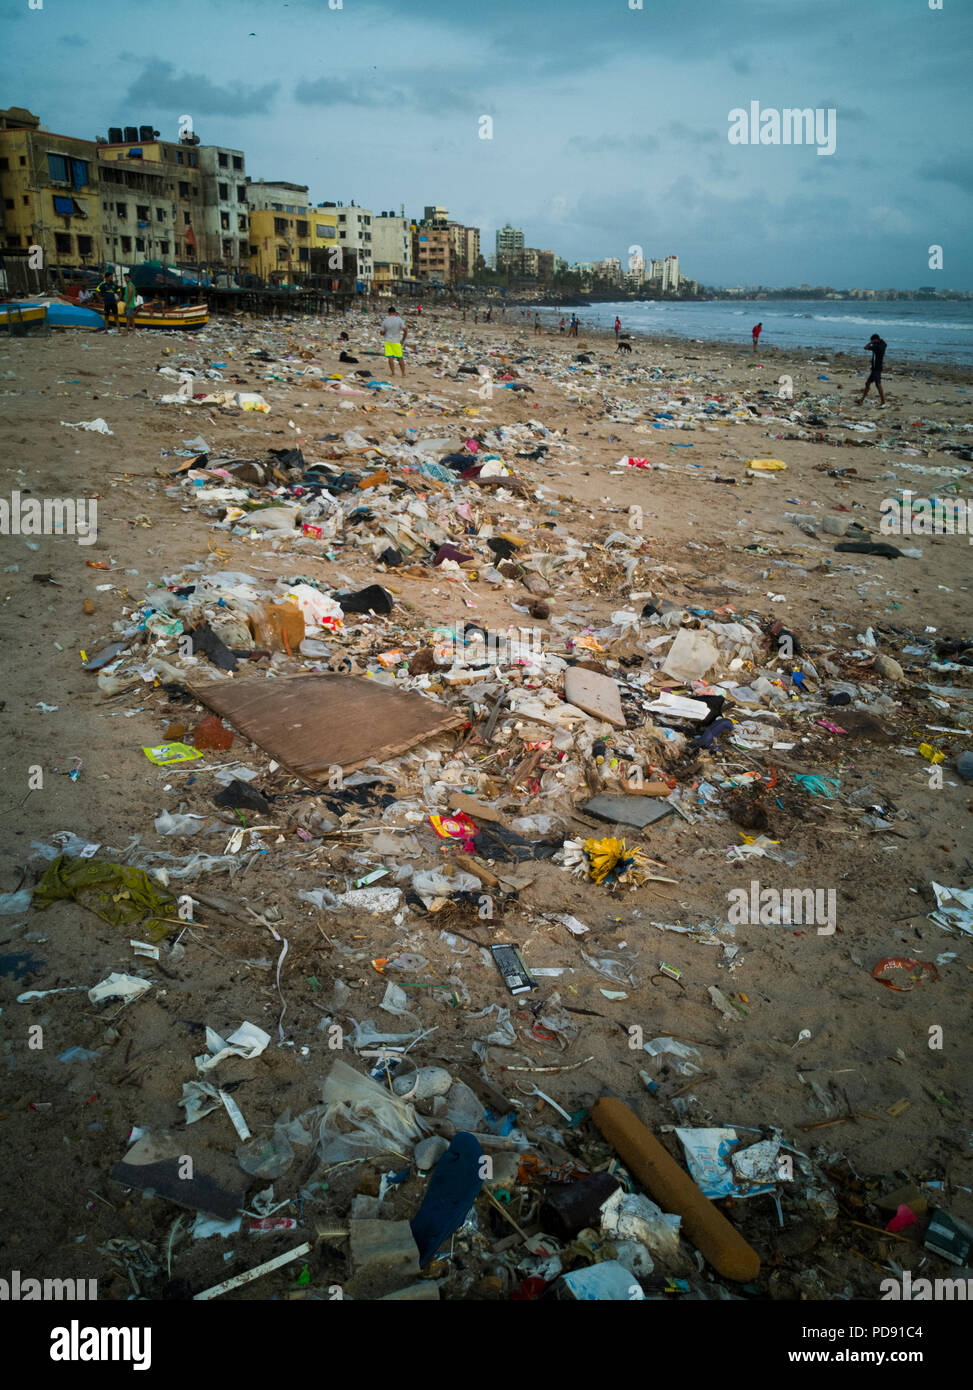 Plastic garbage pollution covers sand at Versova beach, Mumbai, India - Stock Image